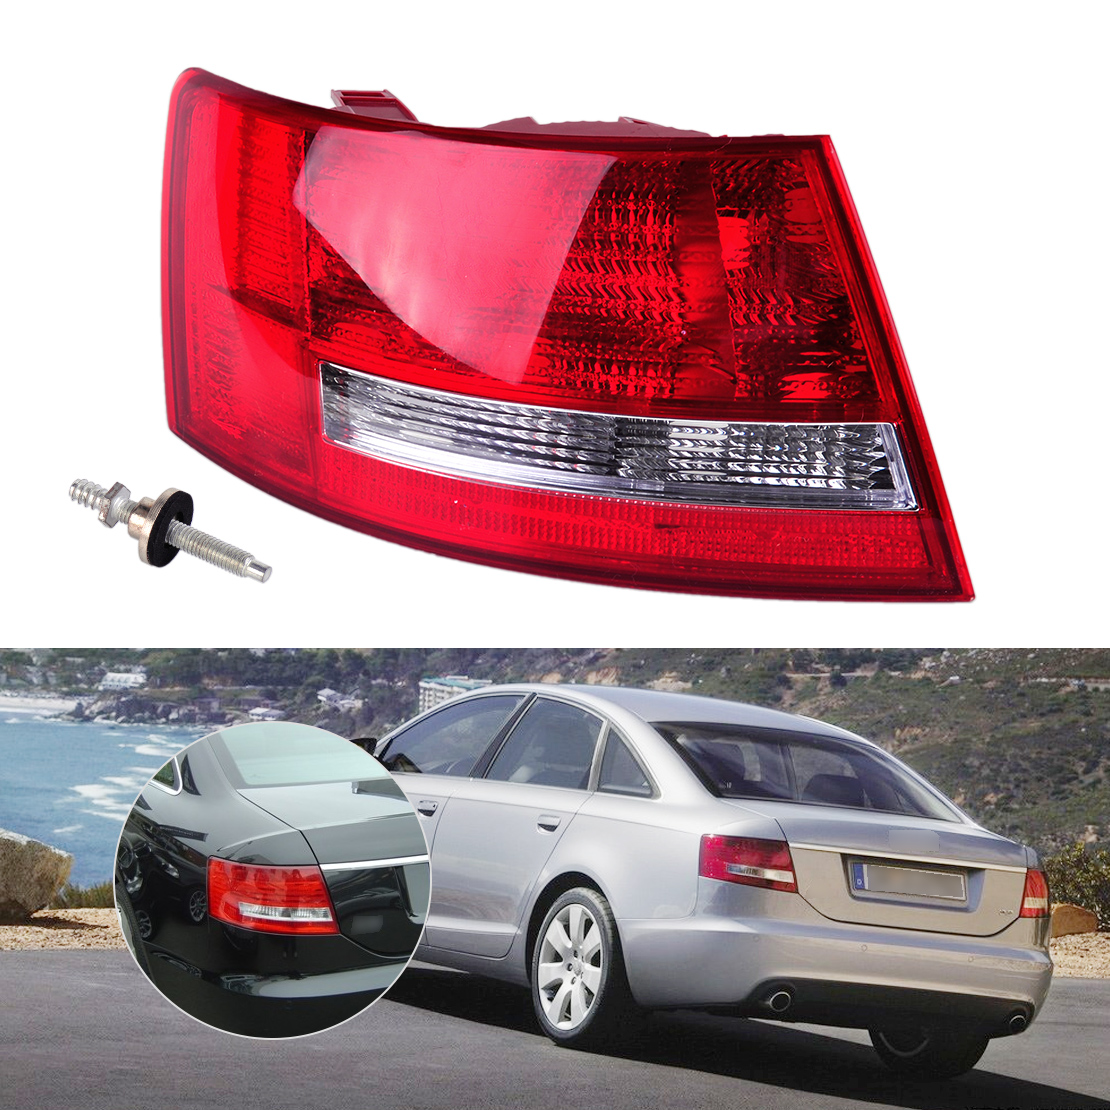 beler Left Tail Light Assembly Lamp Housing without Bulb for Audi A6 Quattro A6 2005 2006 2007 2008 Sedan 4F5945095L 4F5945095D aftermarket free shipping motorcycle parts eliminator tidy tail for 2006 2007 2008 fz6 fazer 2007 2008b lack